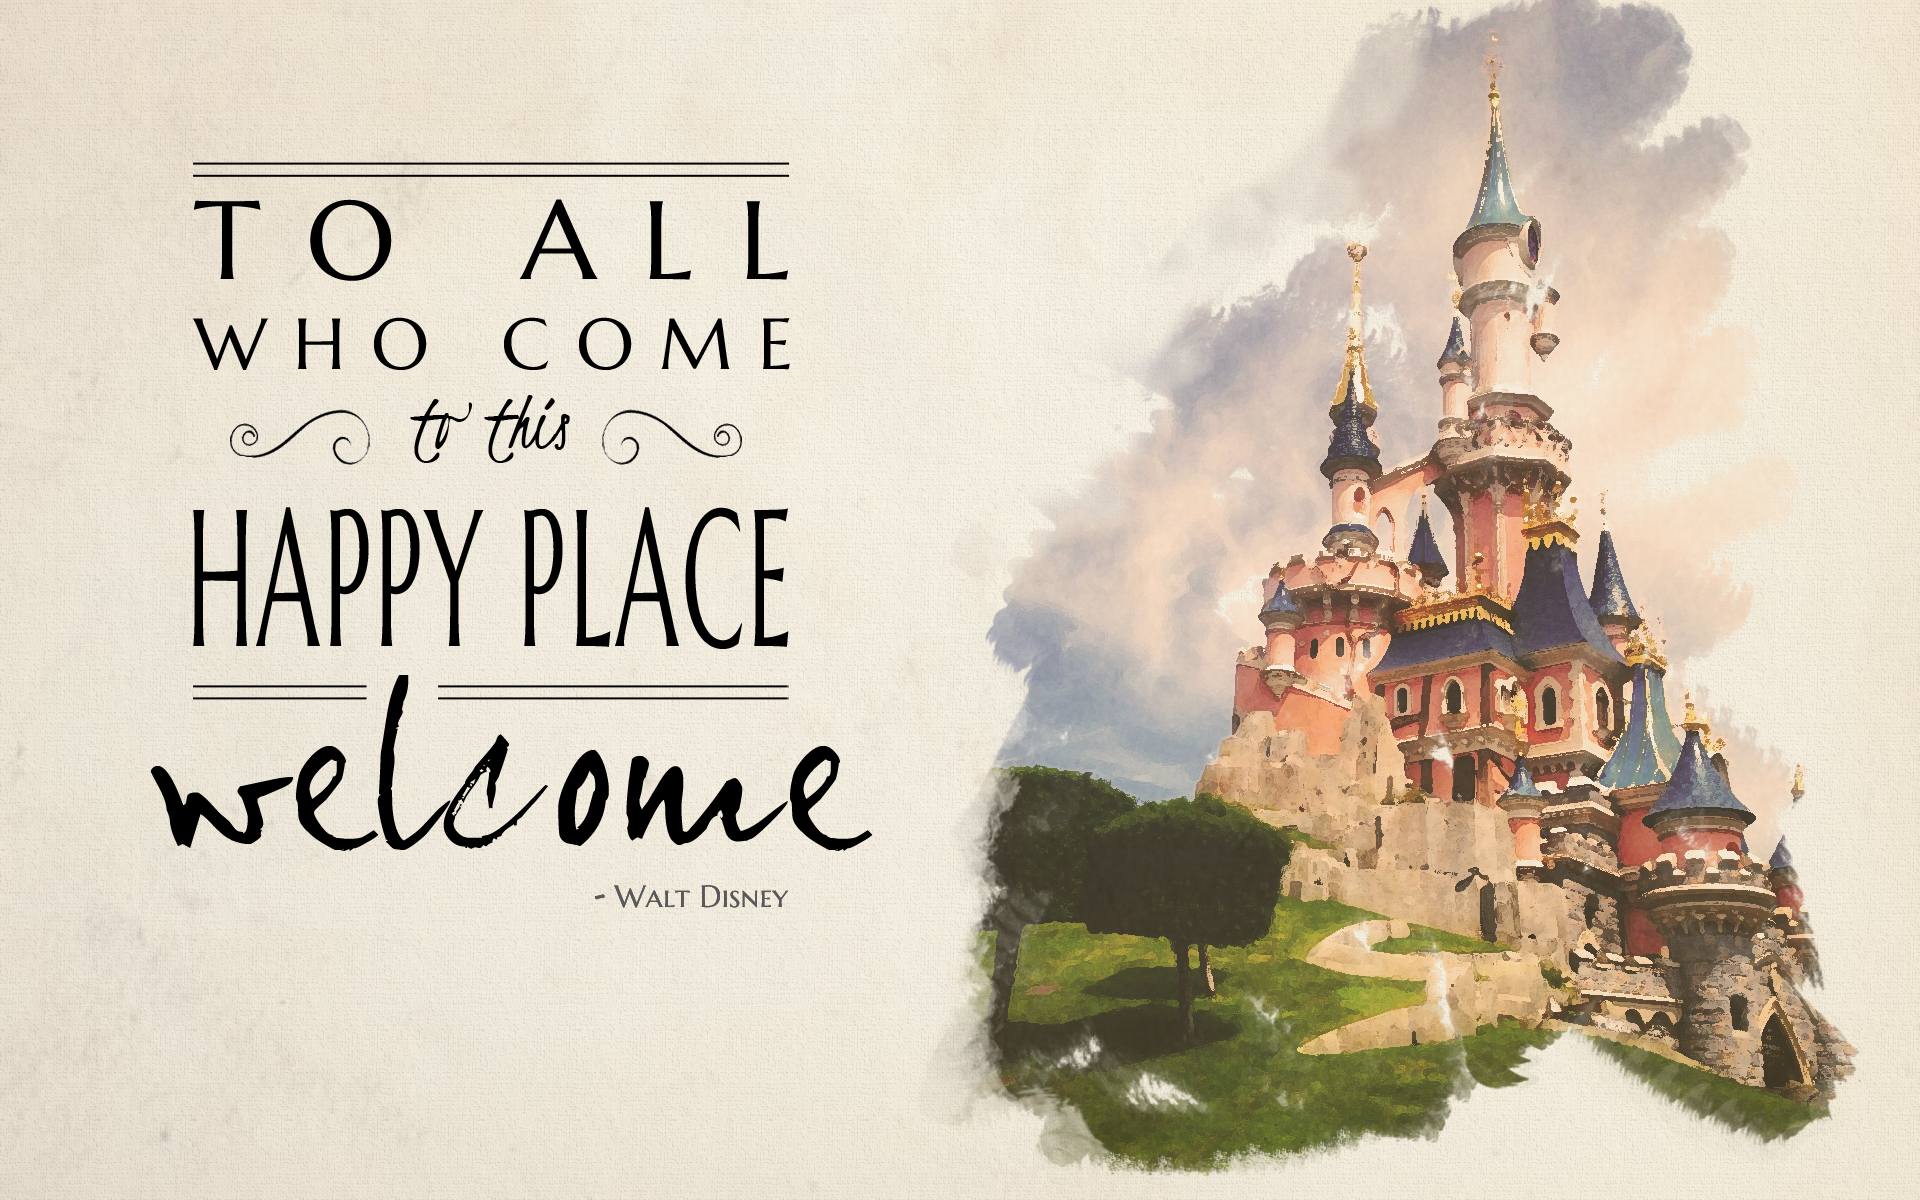 Quote For Happy Place Disney World: To All Who Come To This Happy Place